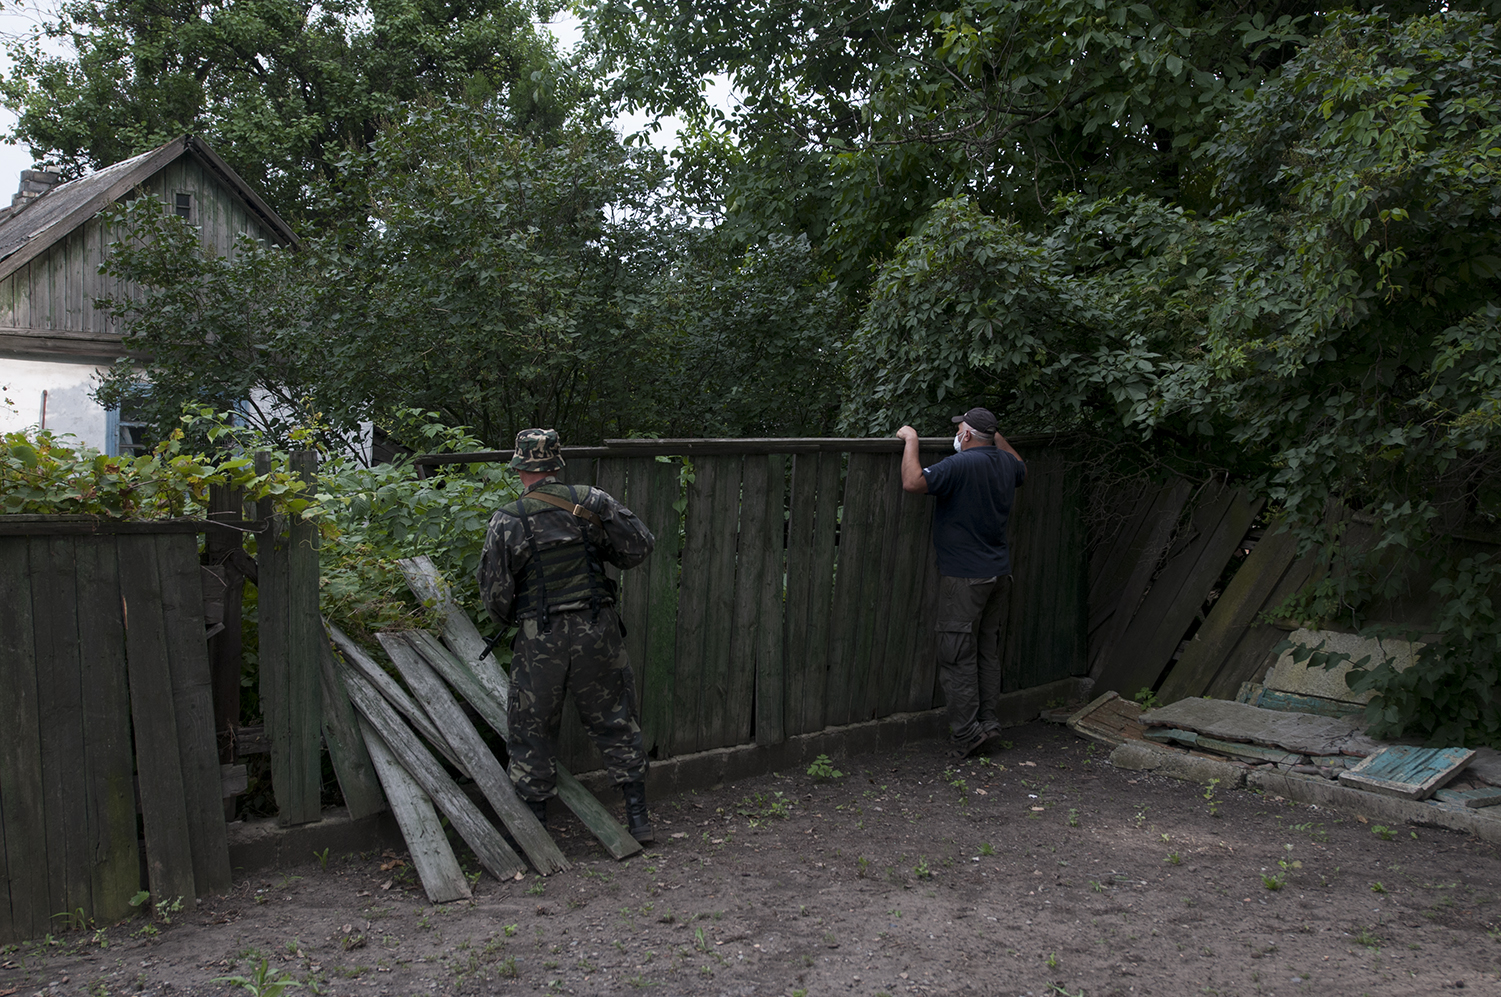 A separatist and a civilian looking checking the garden from which a really strong smell was coming out